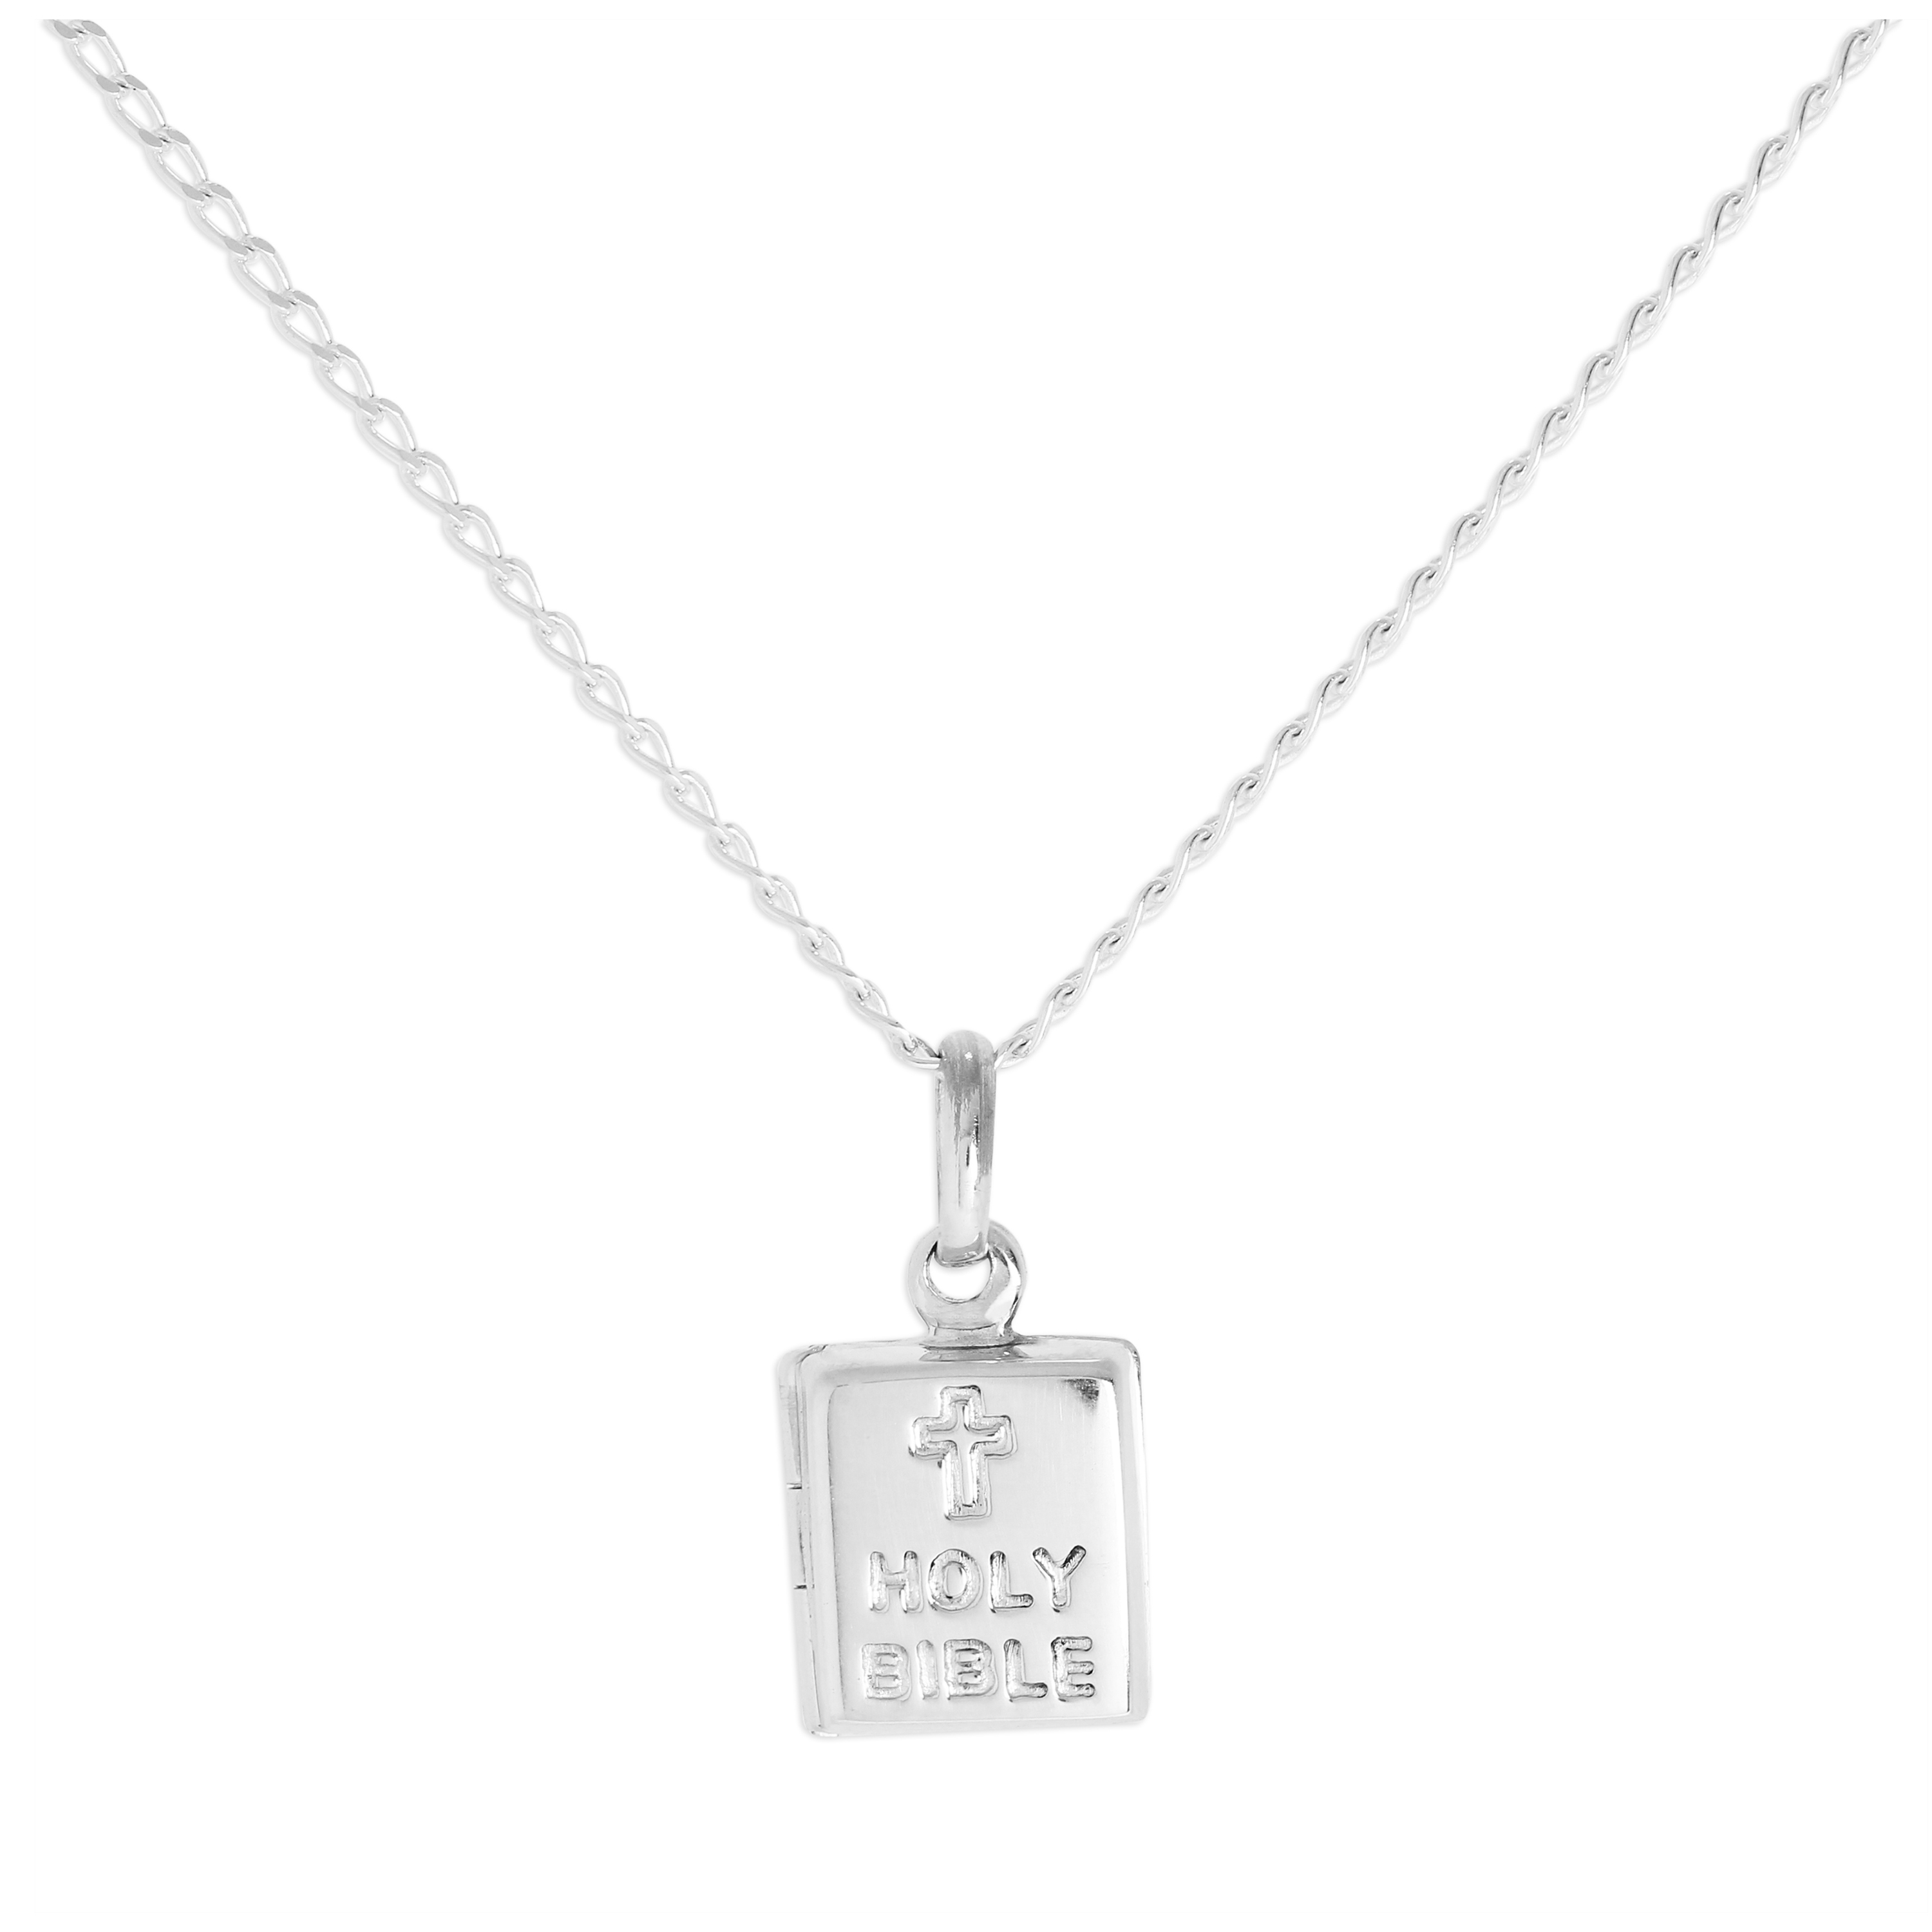 An image of Sterling Silver Holy Bible Locket on 20 Inches Chain